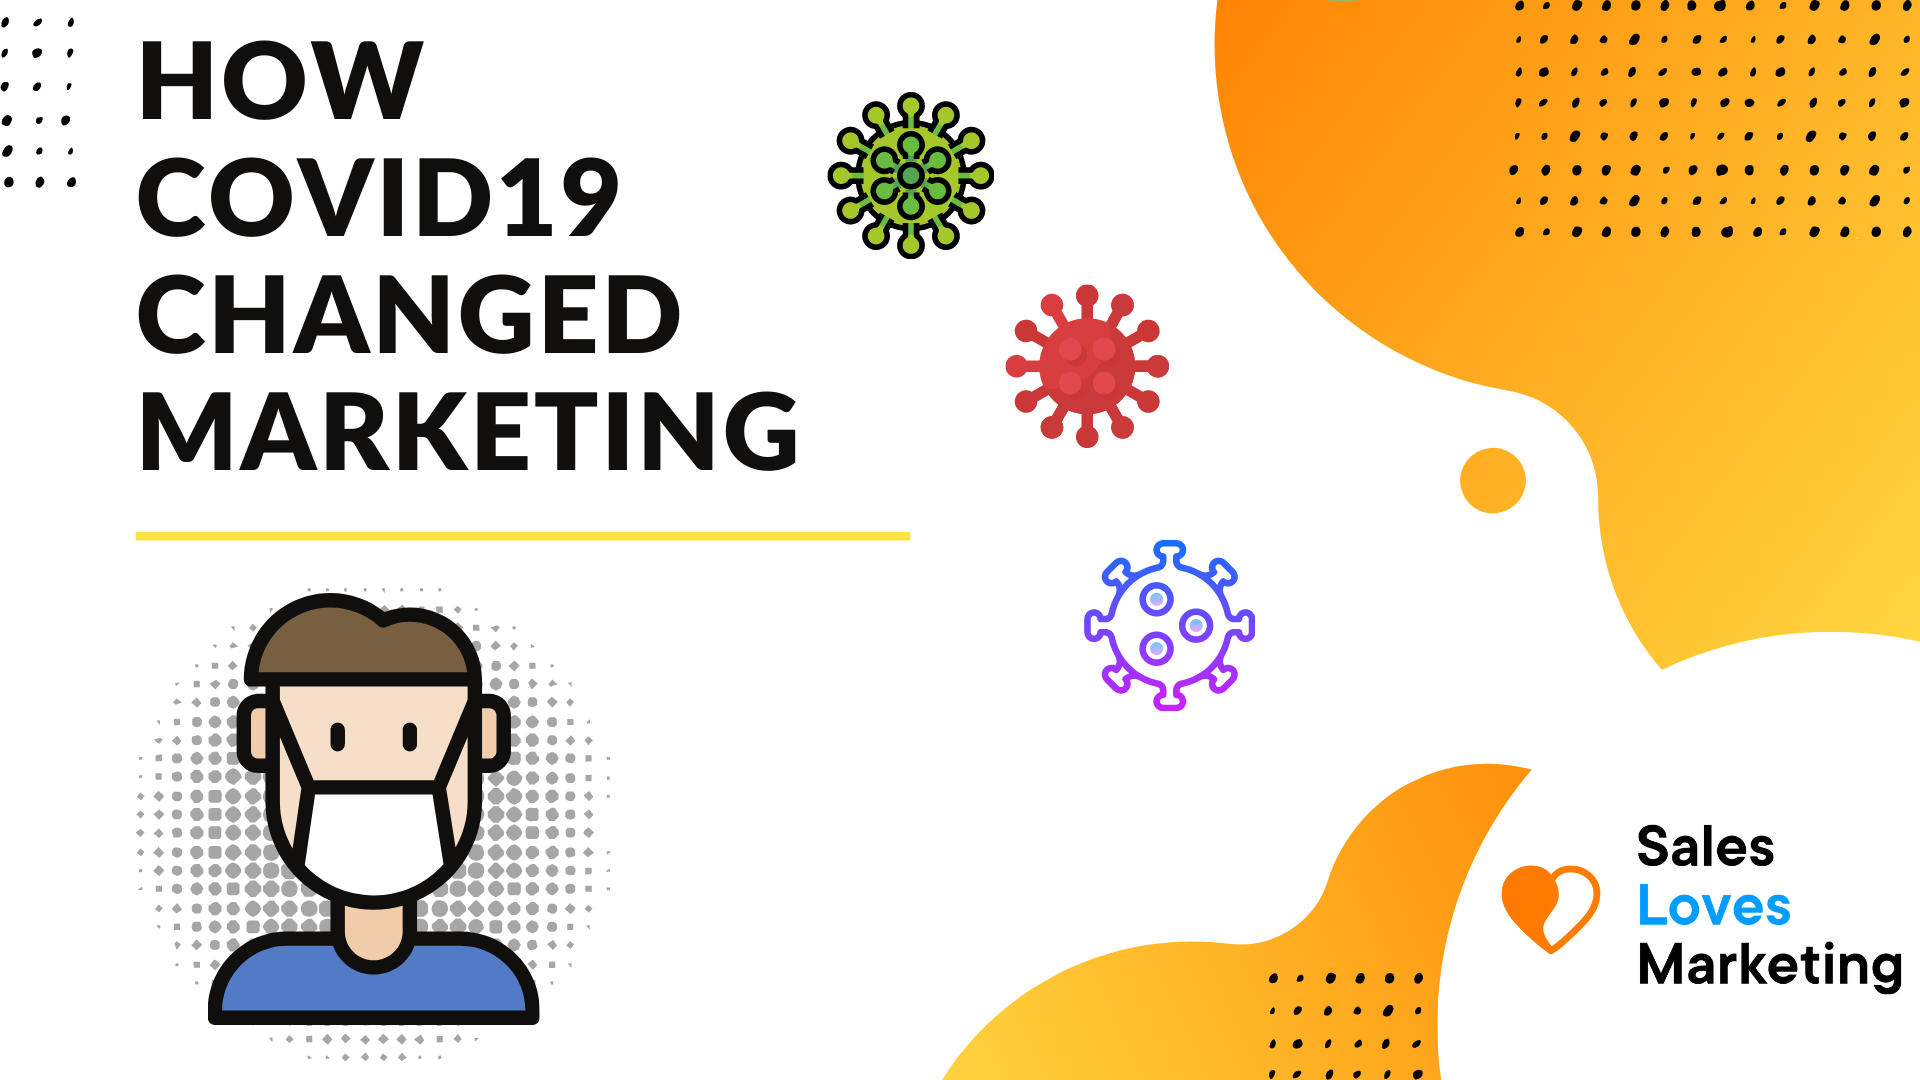 How Covid-19 changed the way we do marketing.